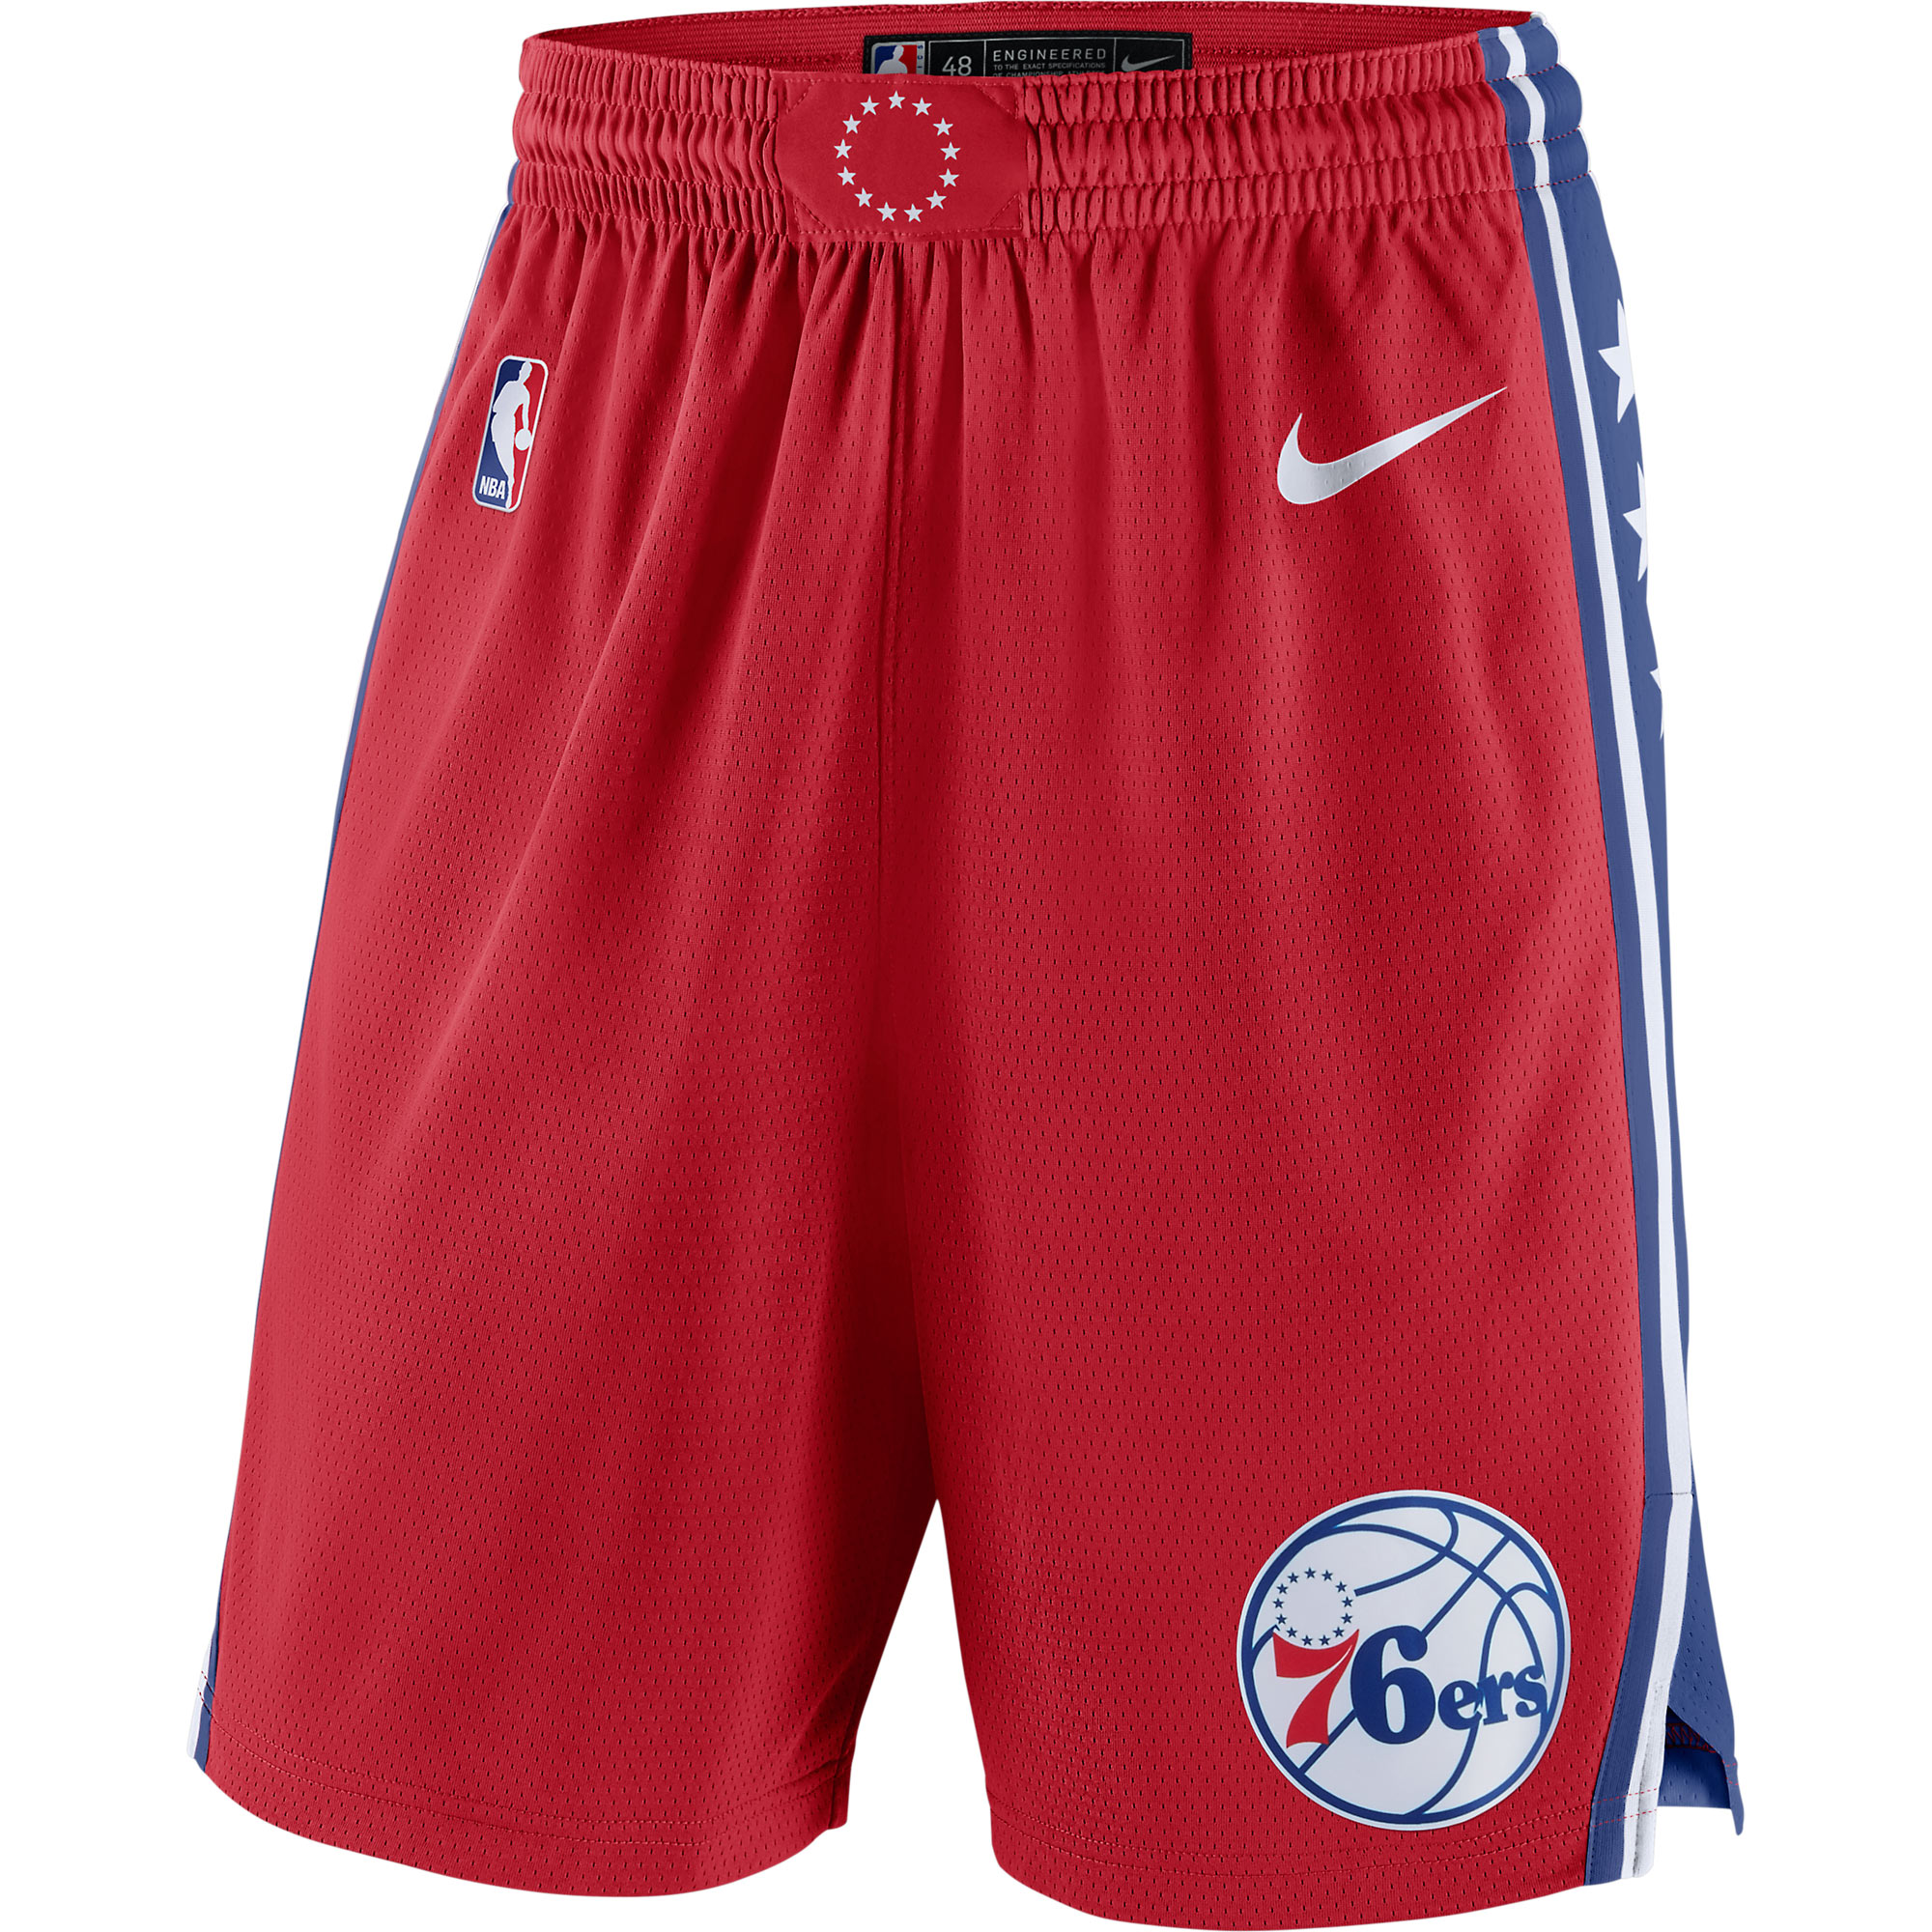 Philadelphia 76ers Nike Statement Swingman Basketball Shorts - Red